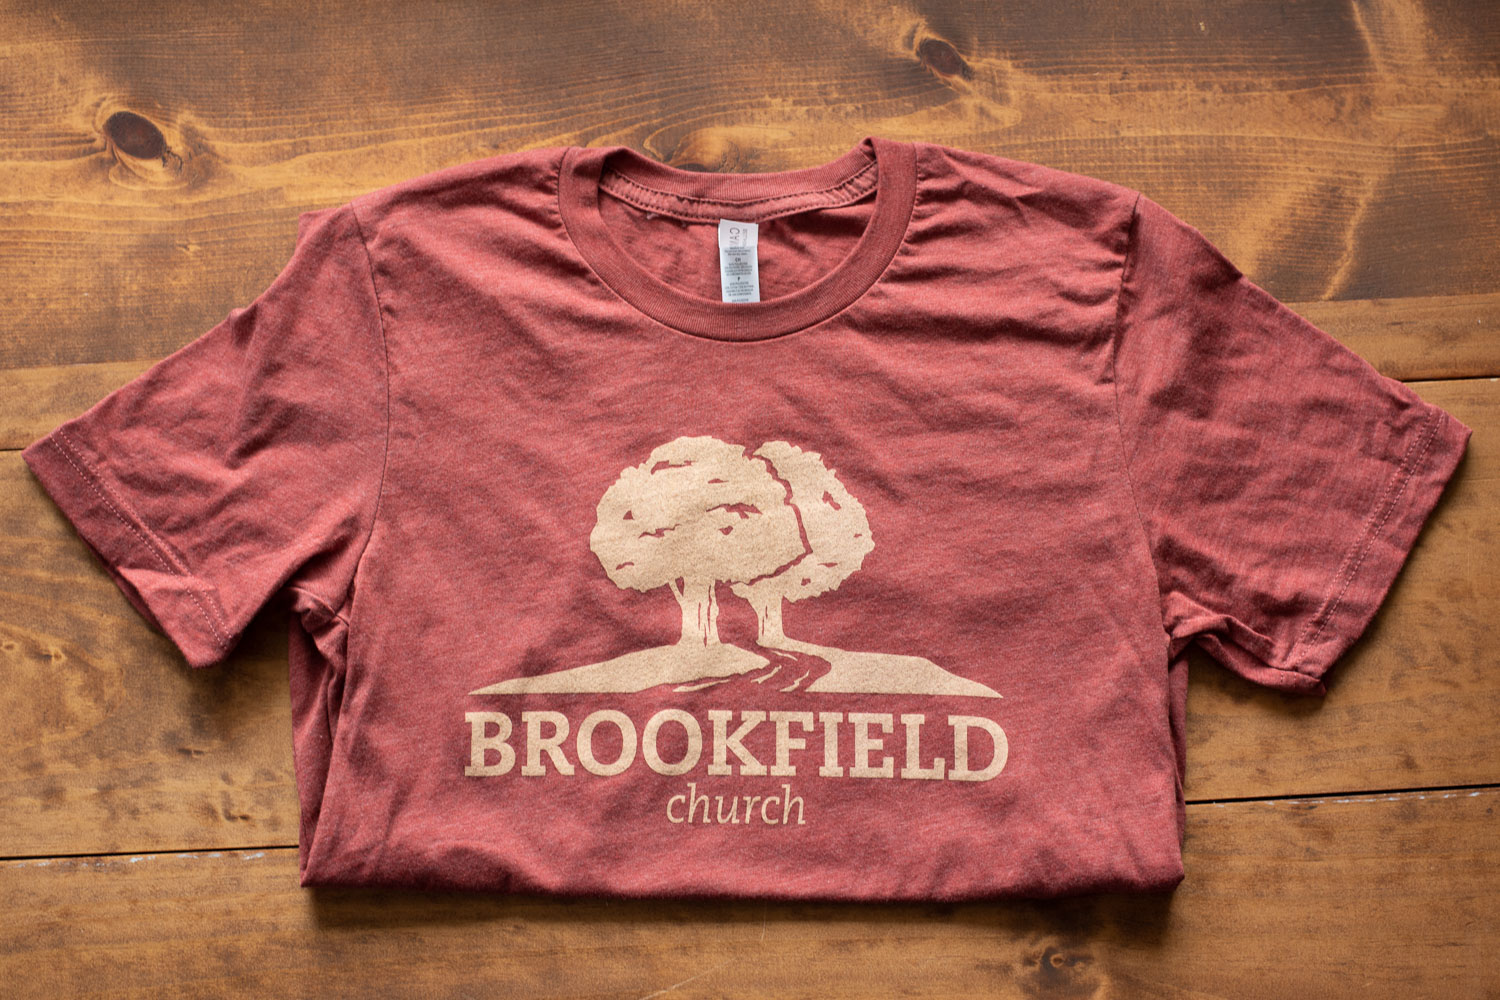 A t-shirt with an alternative logo for Brookfield Church in Athens, Ohio.